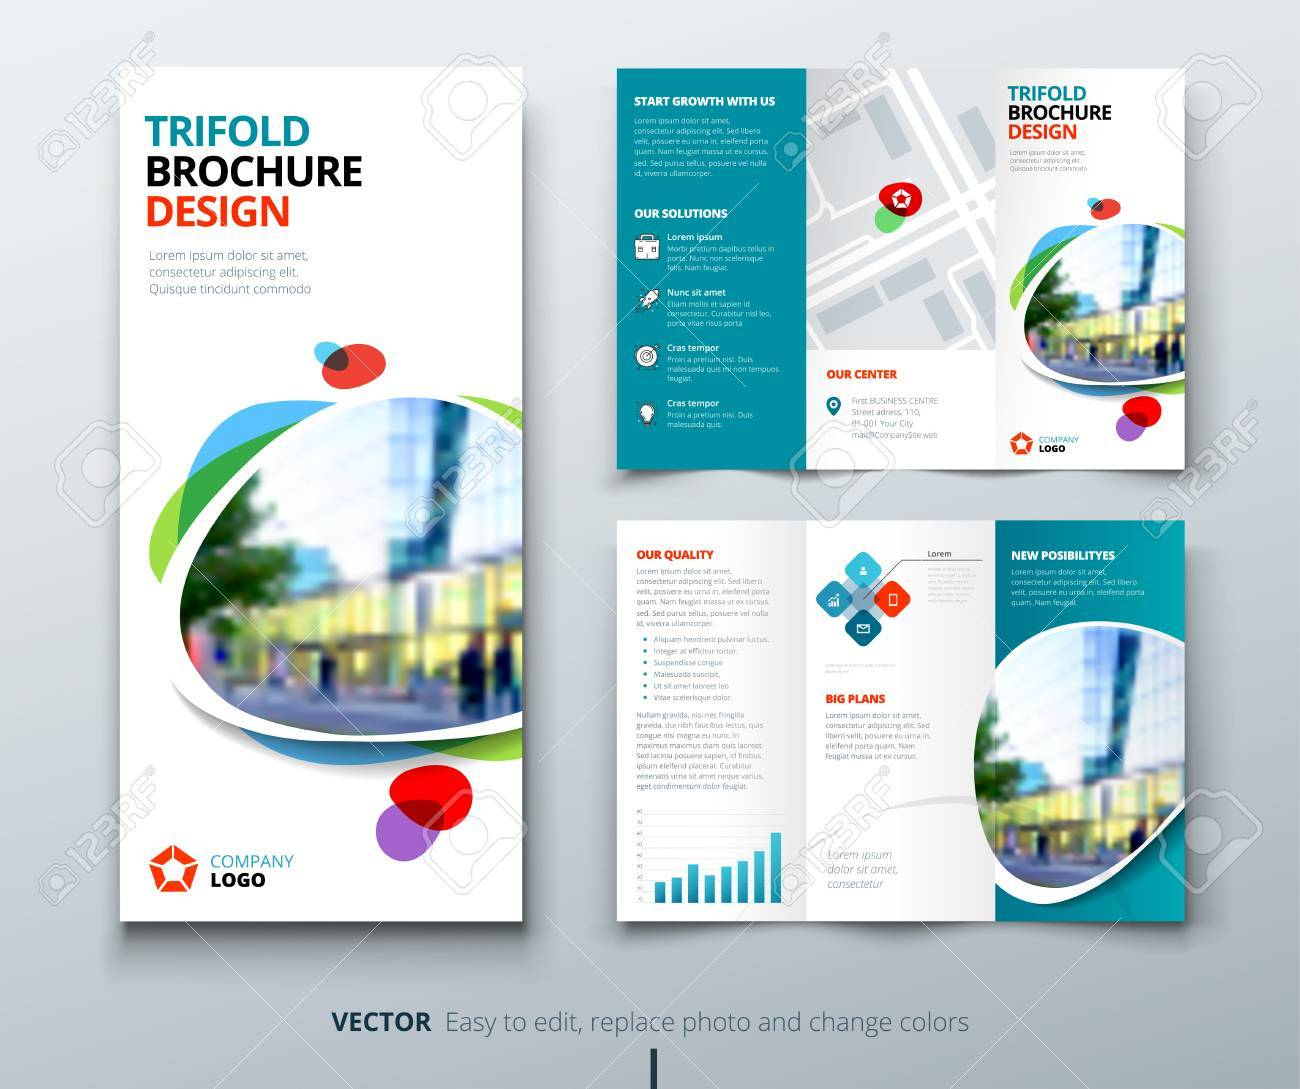 Business tri fold brochure design. Teal, orange corporate business template for tri fold flyer. Layout with modern square photo and abstract background. Creative concept 3 folded flyer or brochure. - 78685503